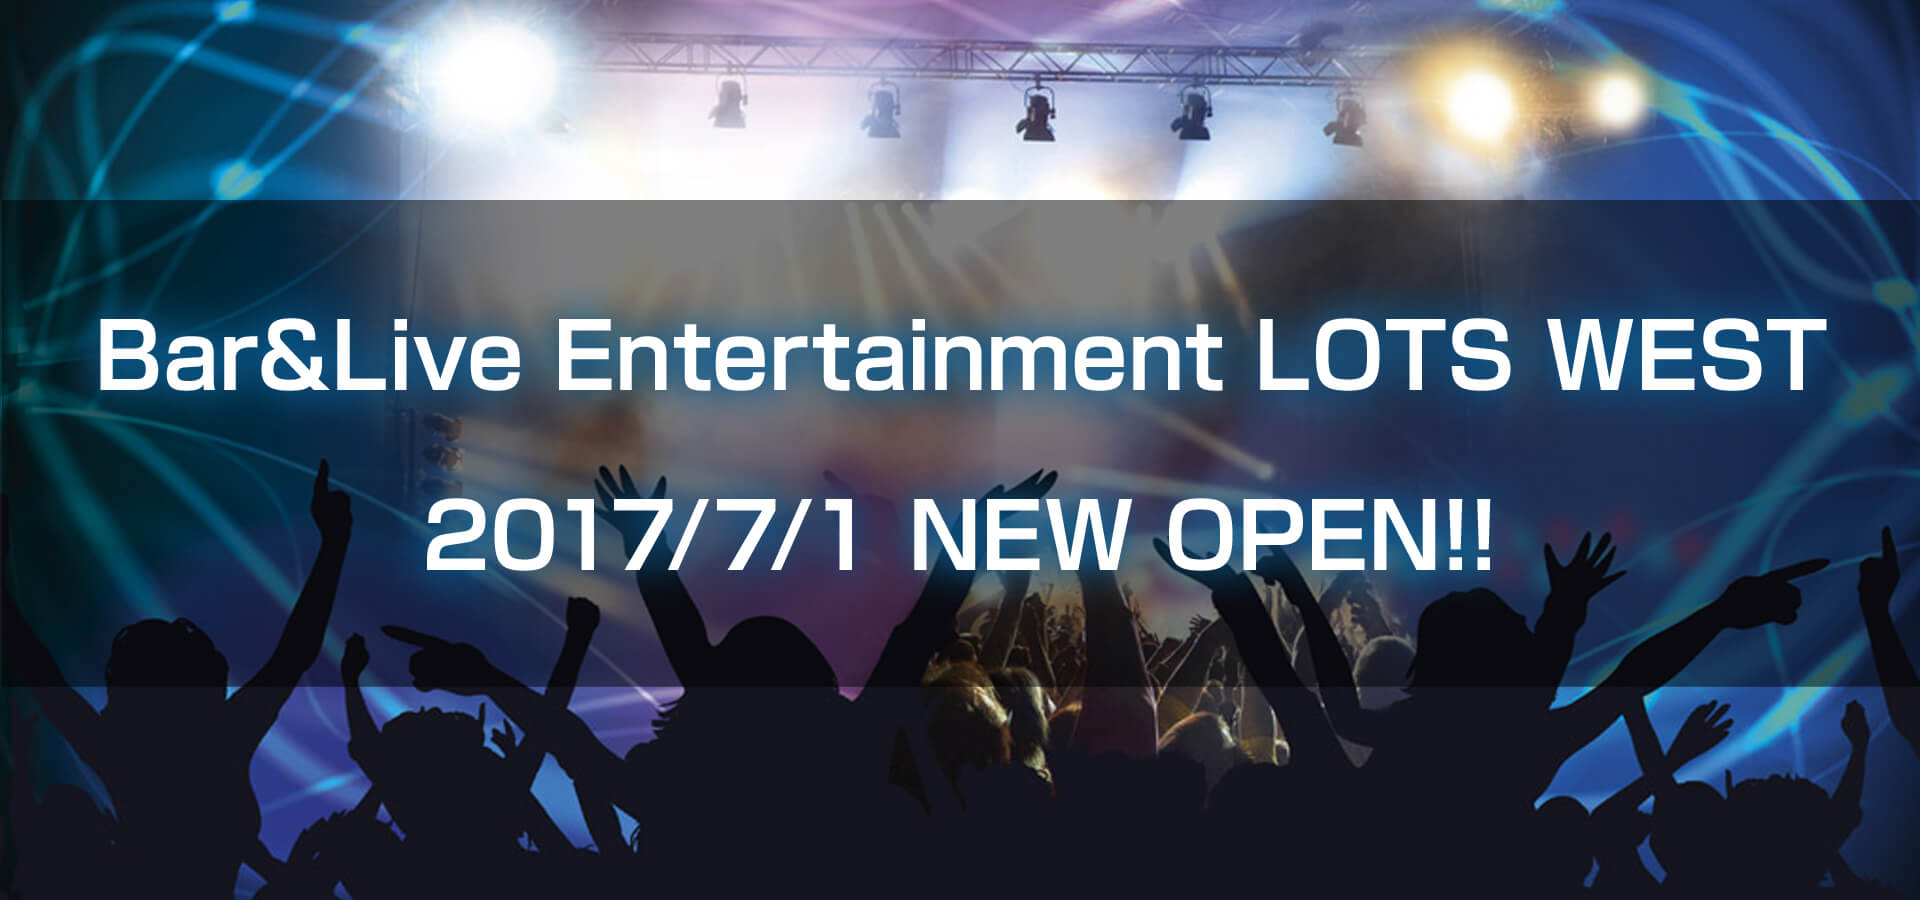 Bar&Live Entertainment LOTS WEST NEW OPEN!!